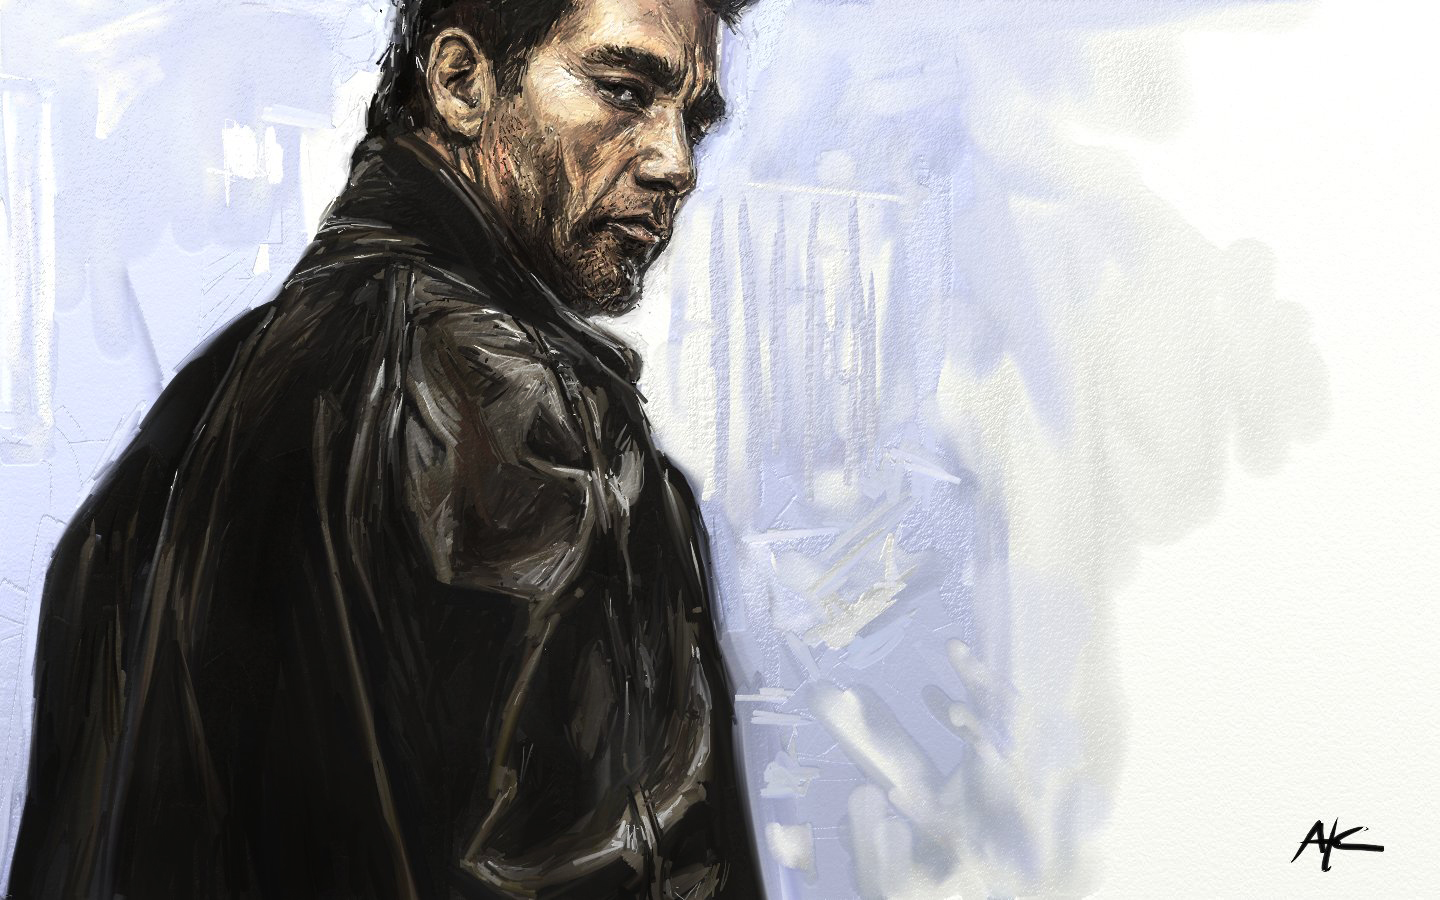 Ch1 - From the Ending Comes the New Beginning Clive_owen_shoot__em_up_by_akharadeth-d33arrg